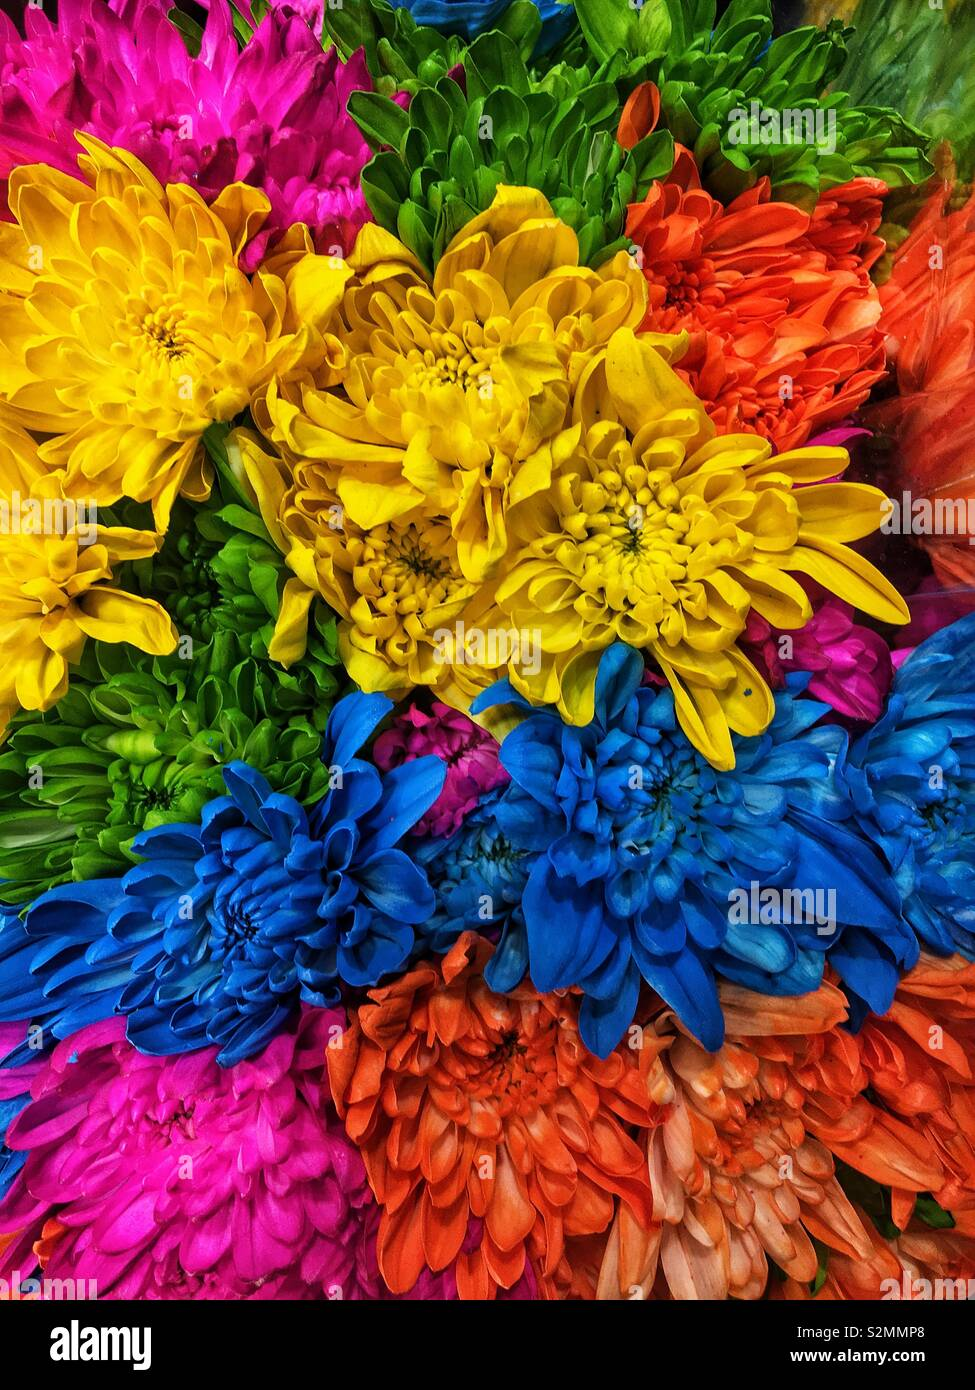 Spring Flower Bouquet Of Brightly Colored Yellow Blue Orange And Pink Carnations Stock Photo Alamy